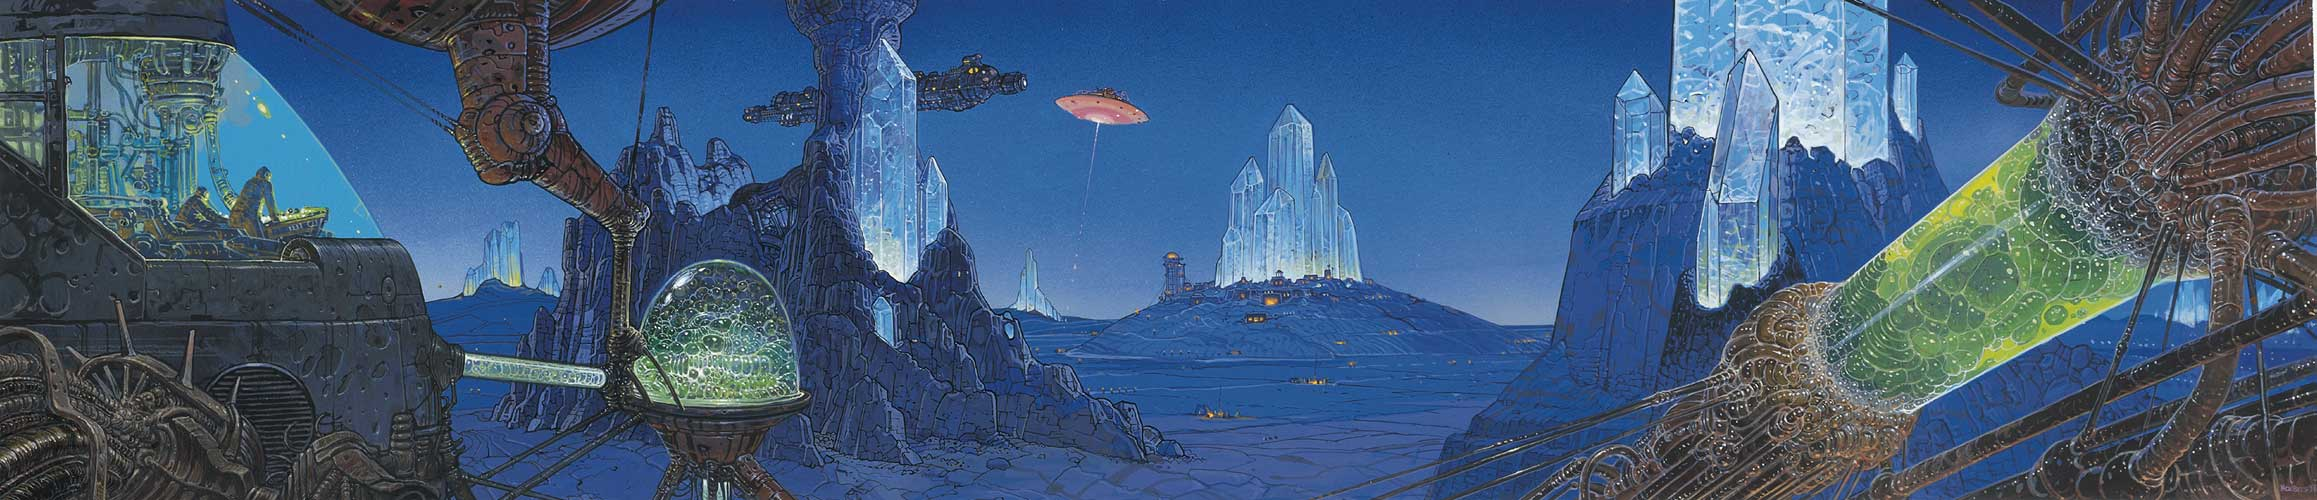 moebius01_big.jpg